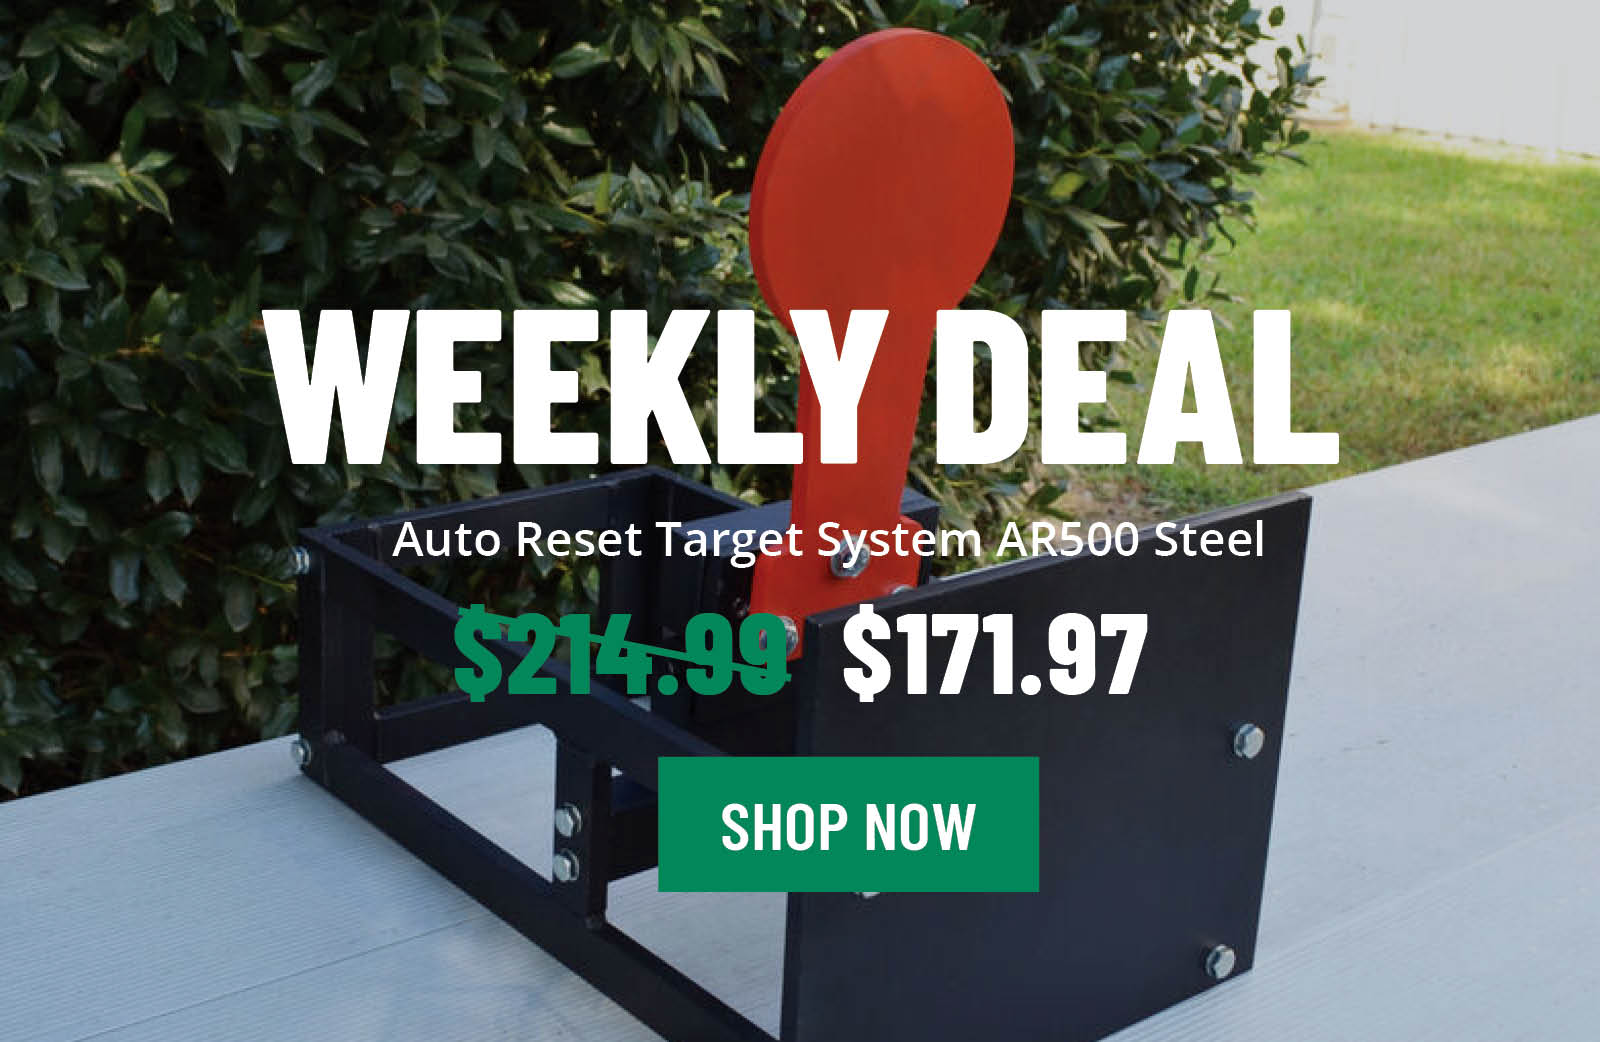 Save Big On The Auto Target Reset System - Flash Deal